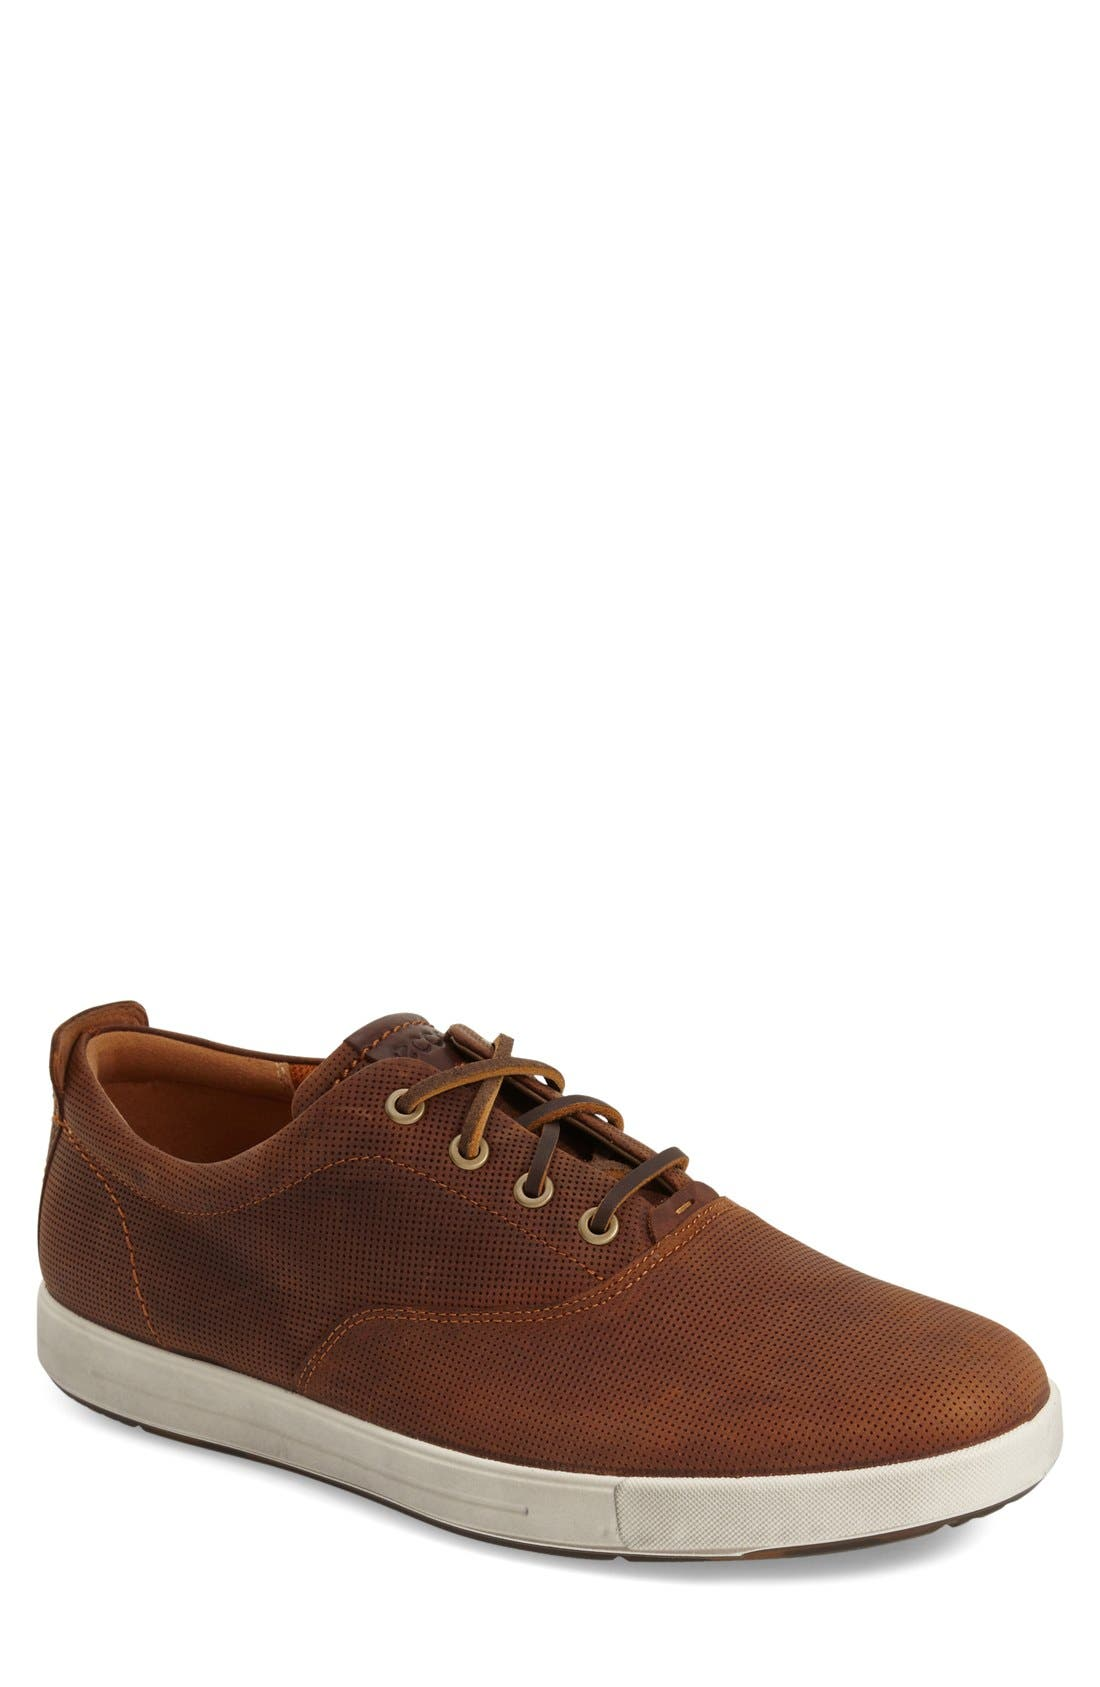 Alternate Image 1 Selected - ECCO 'Eisner' Sneaker (Men)